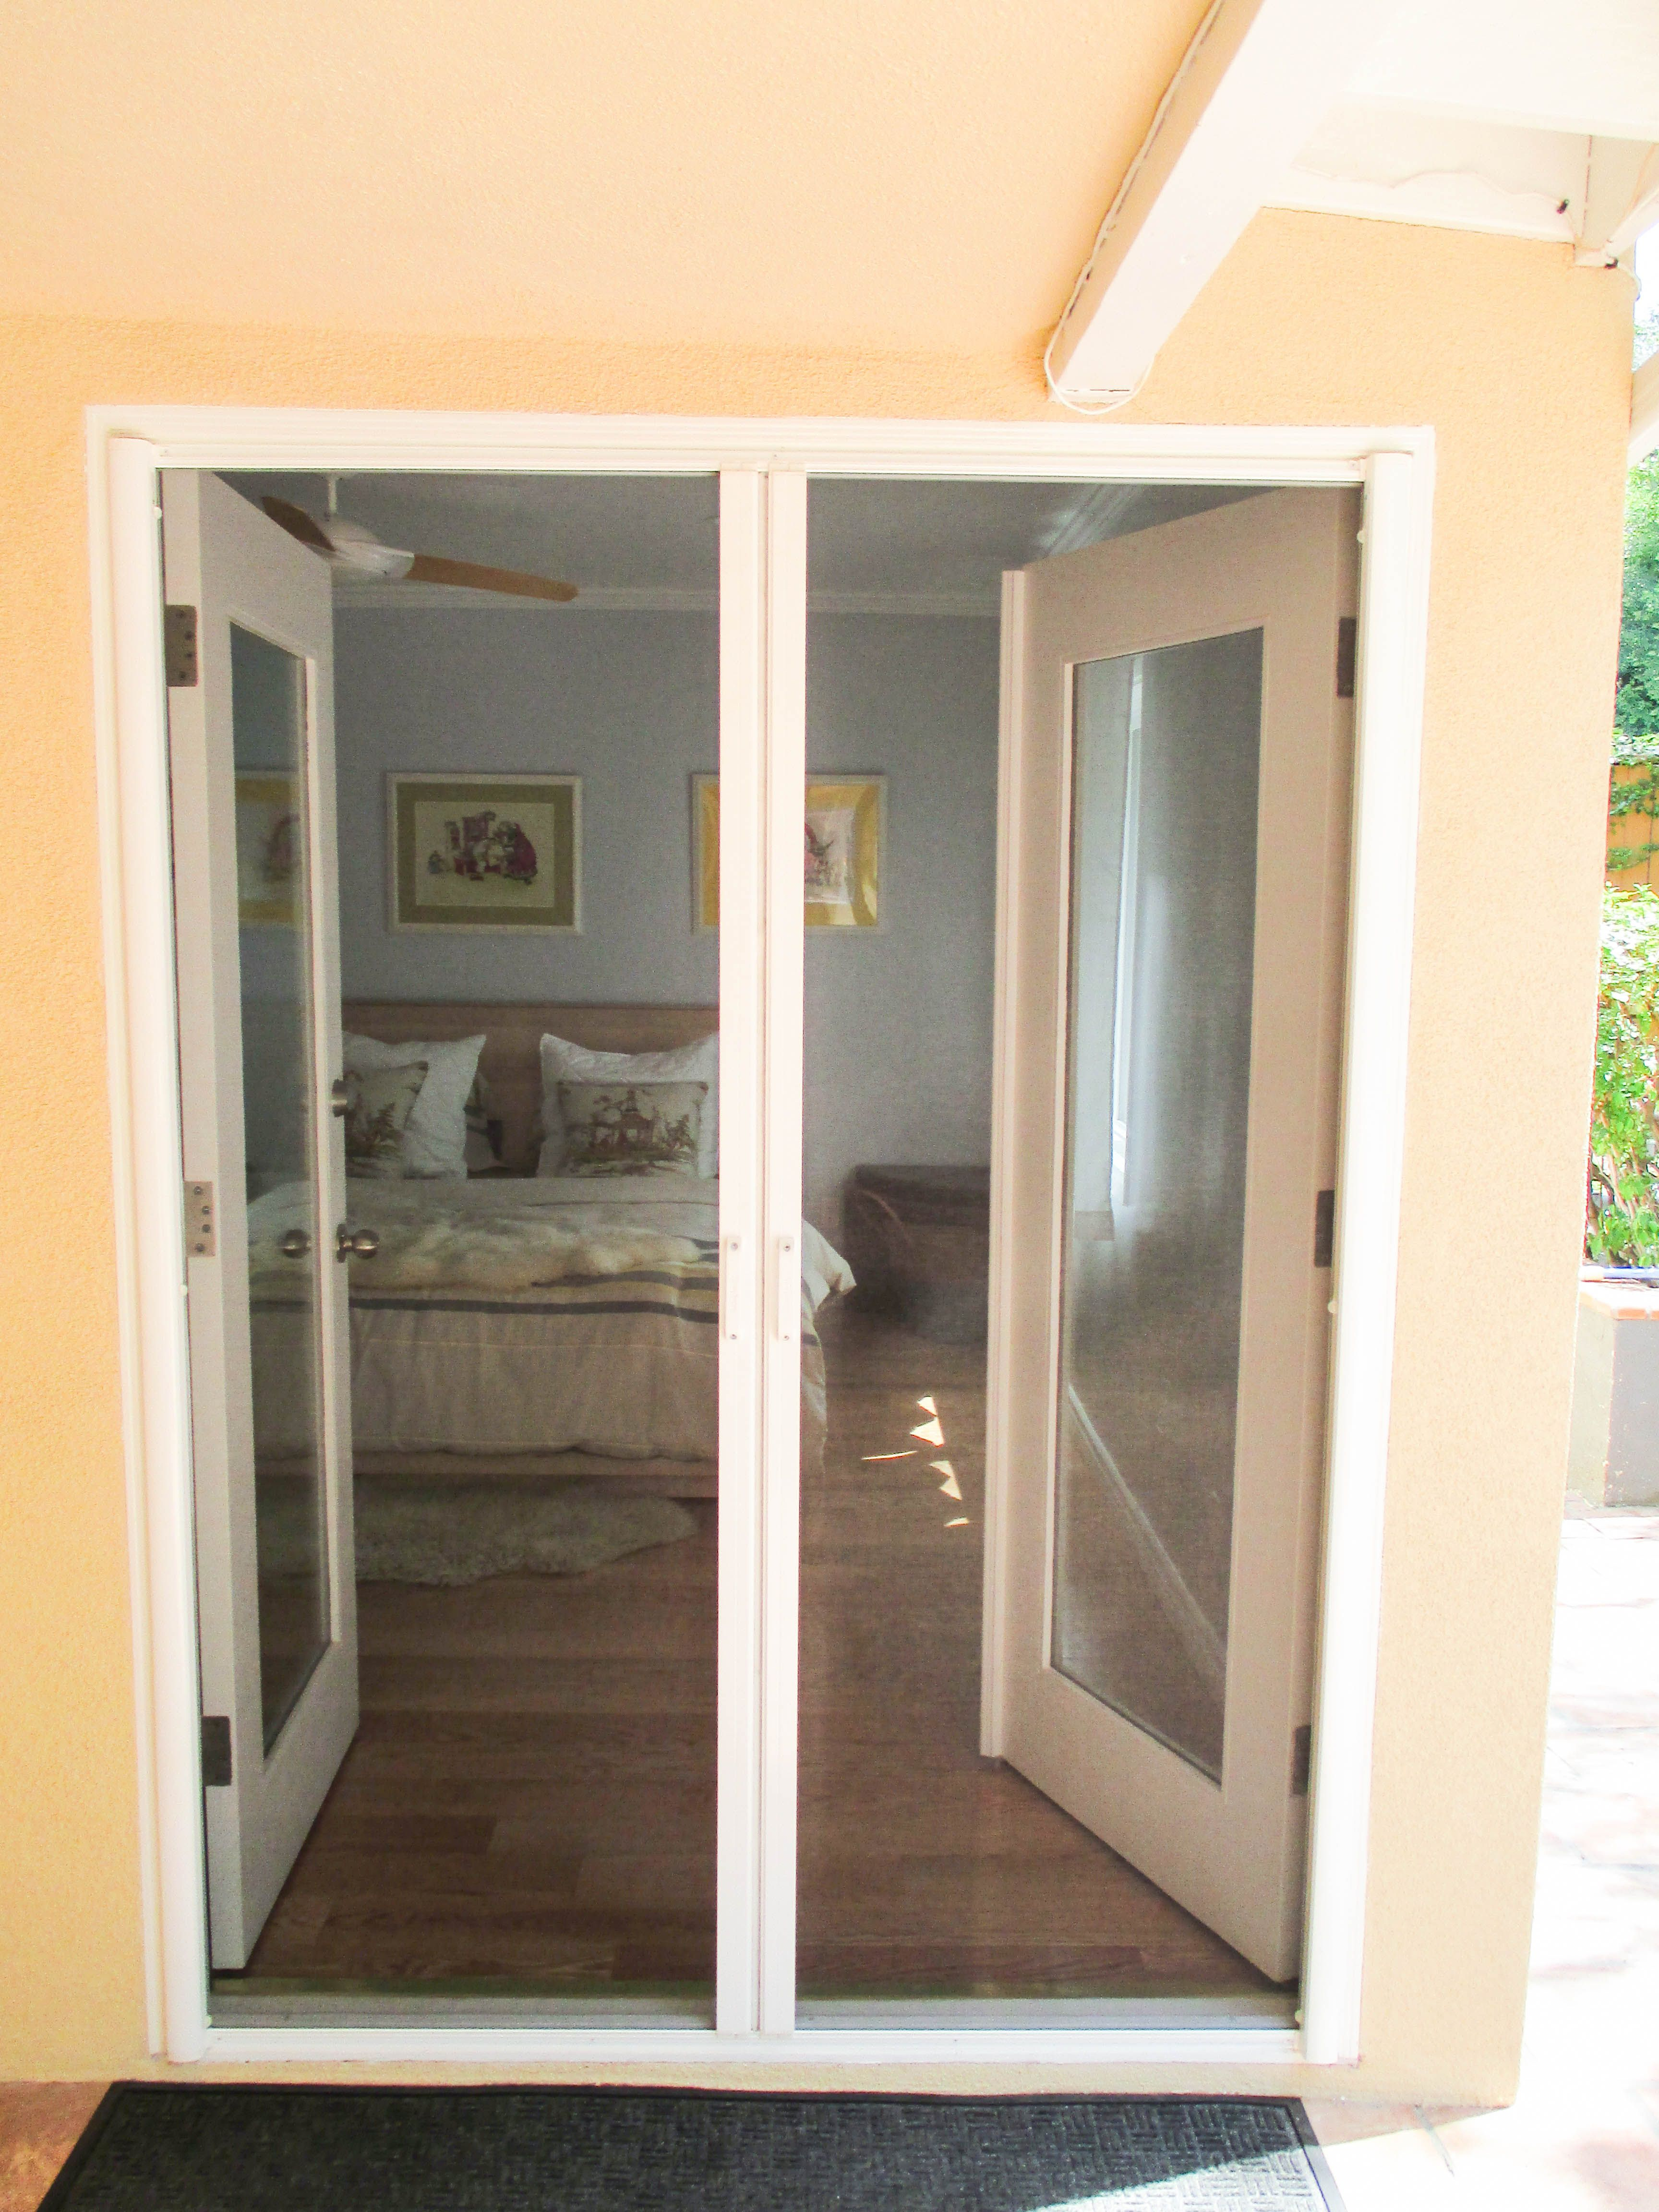 Classic Improvement Products installs Closet Doors StowAway Retractable Screen Doors Interior and Exterior Shutters in Orange County and Los Angeles